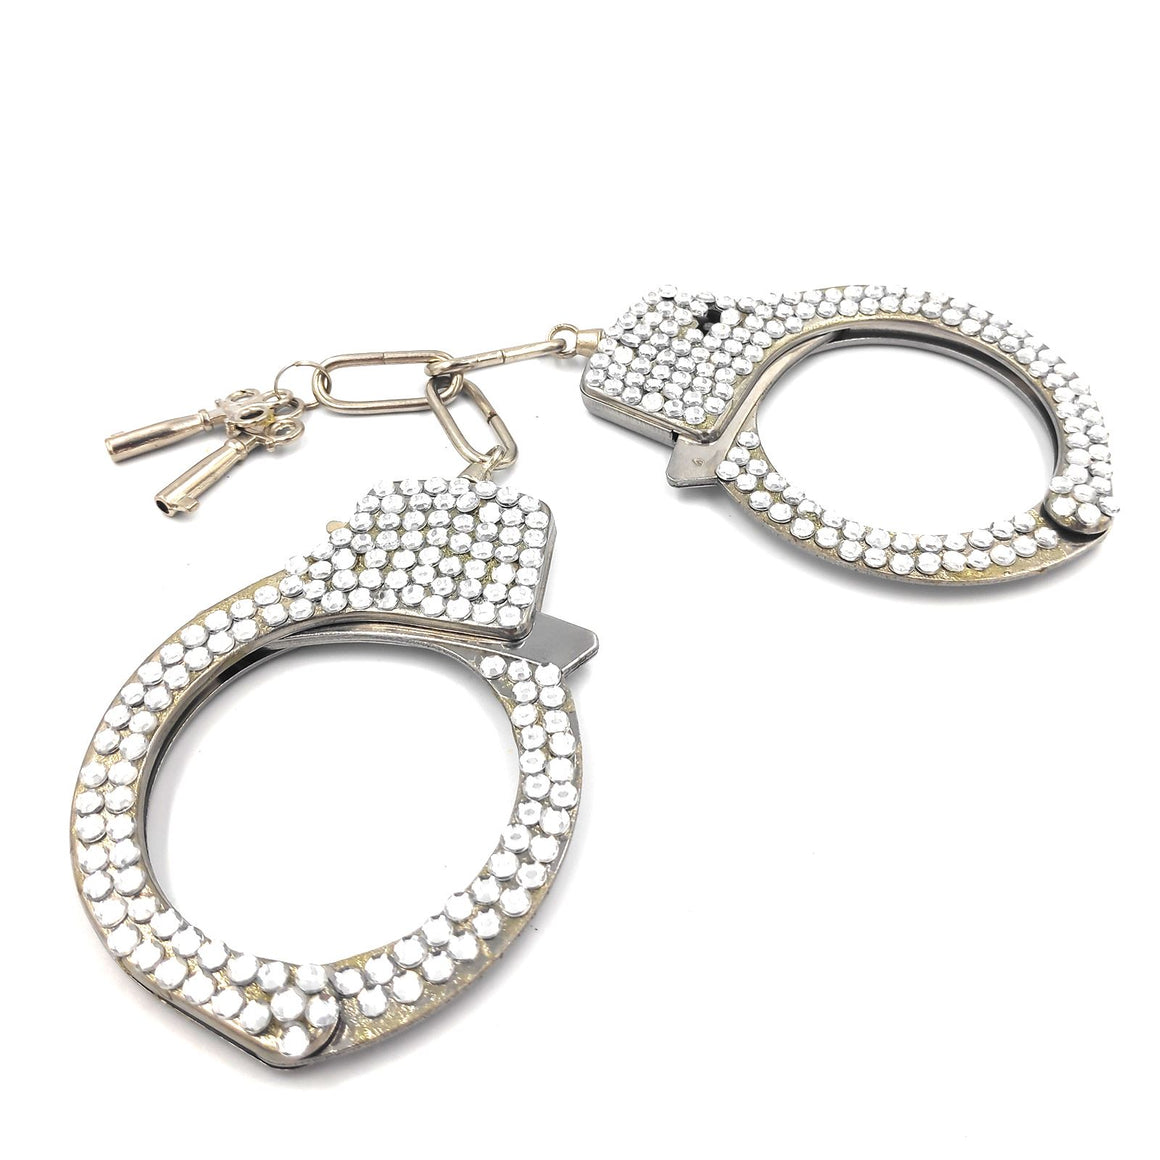 Diamante handcuffs